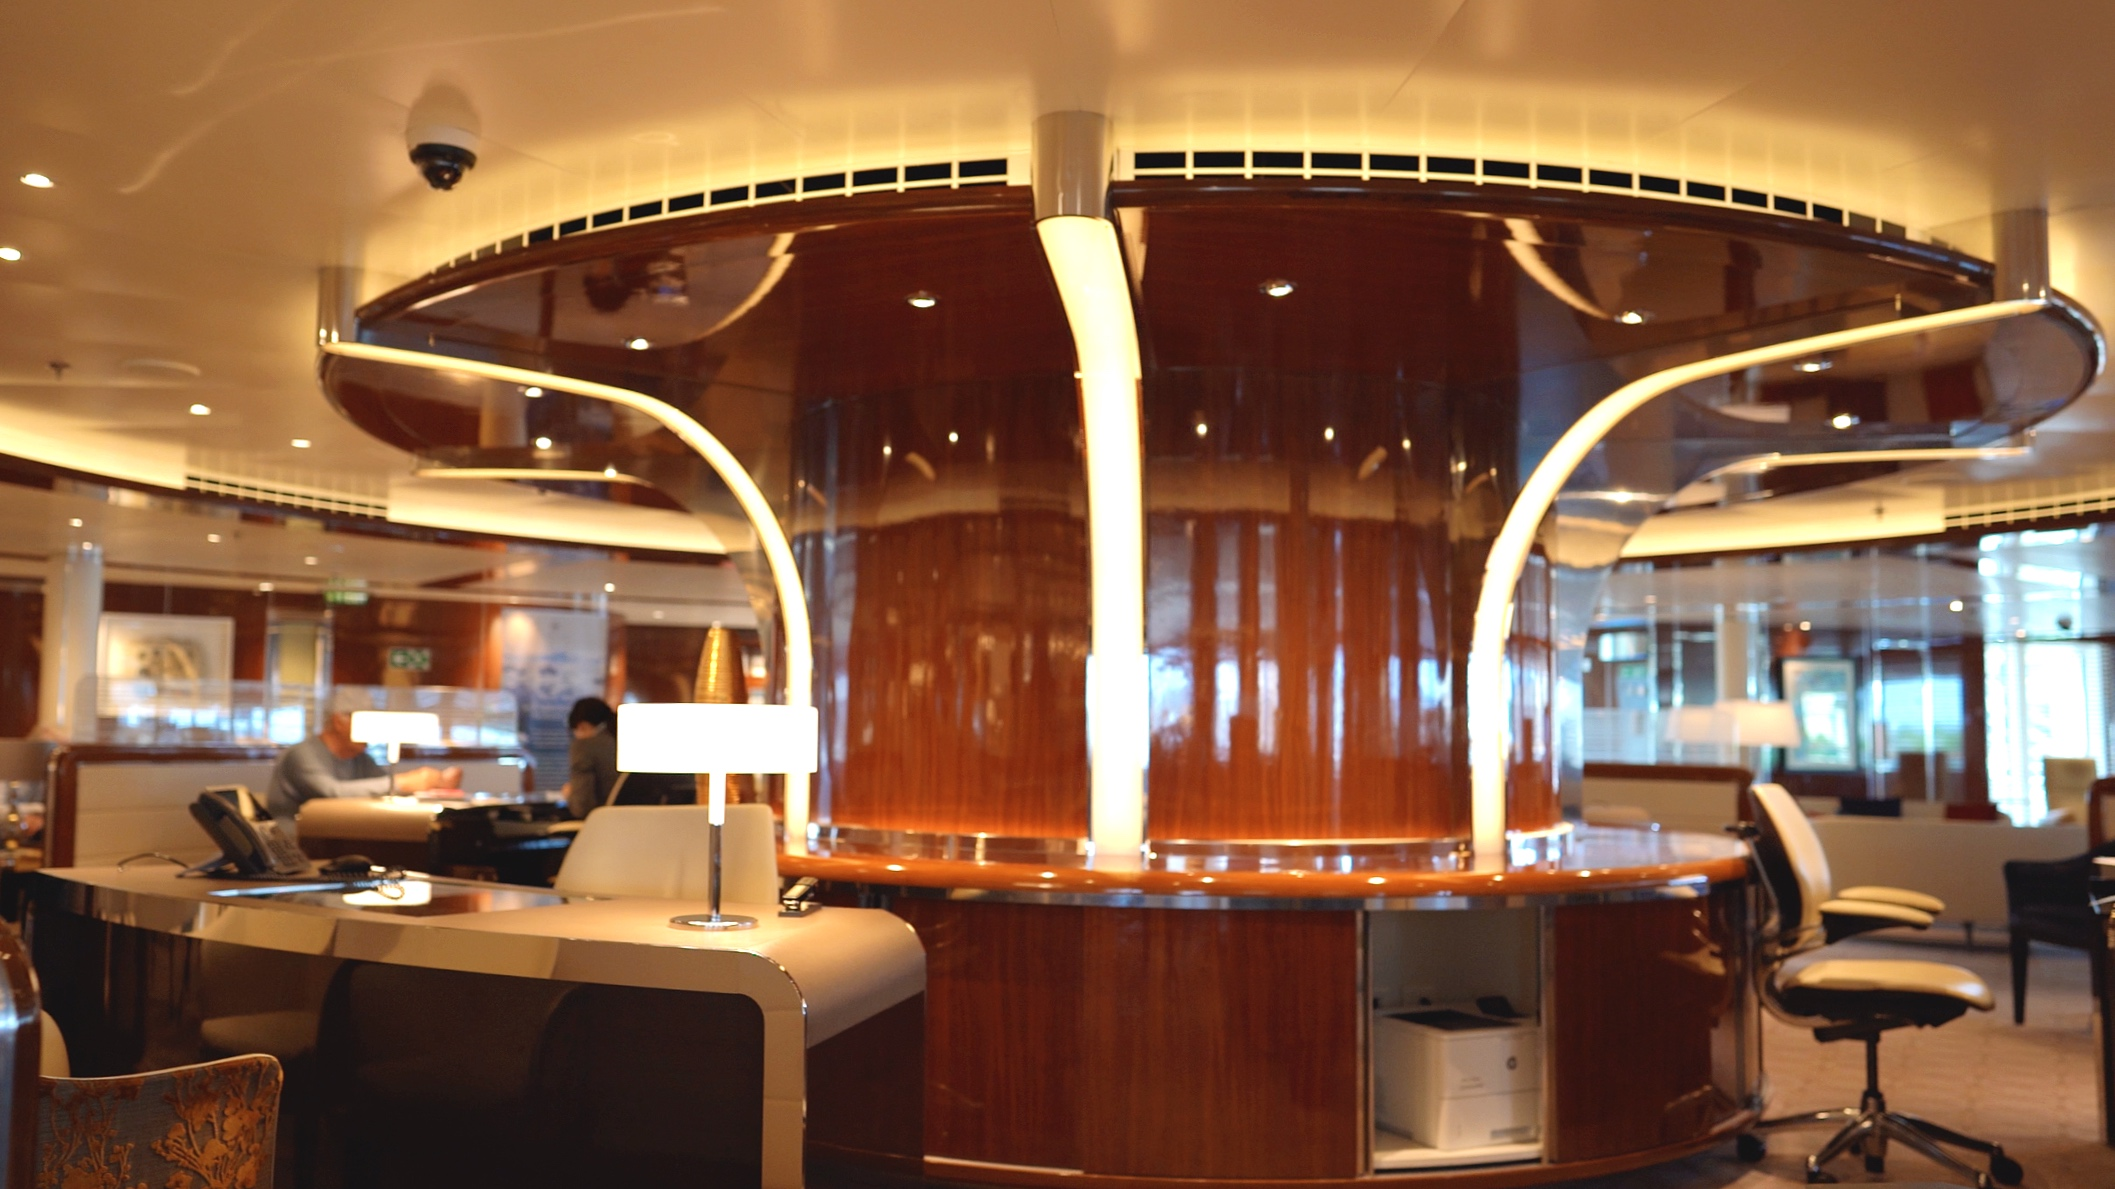 Seabourn Square guest services area.